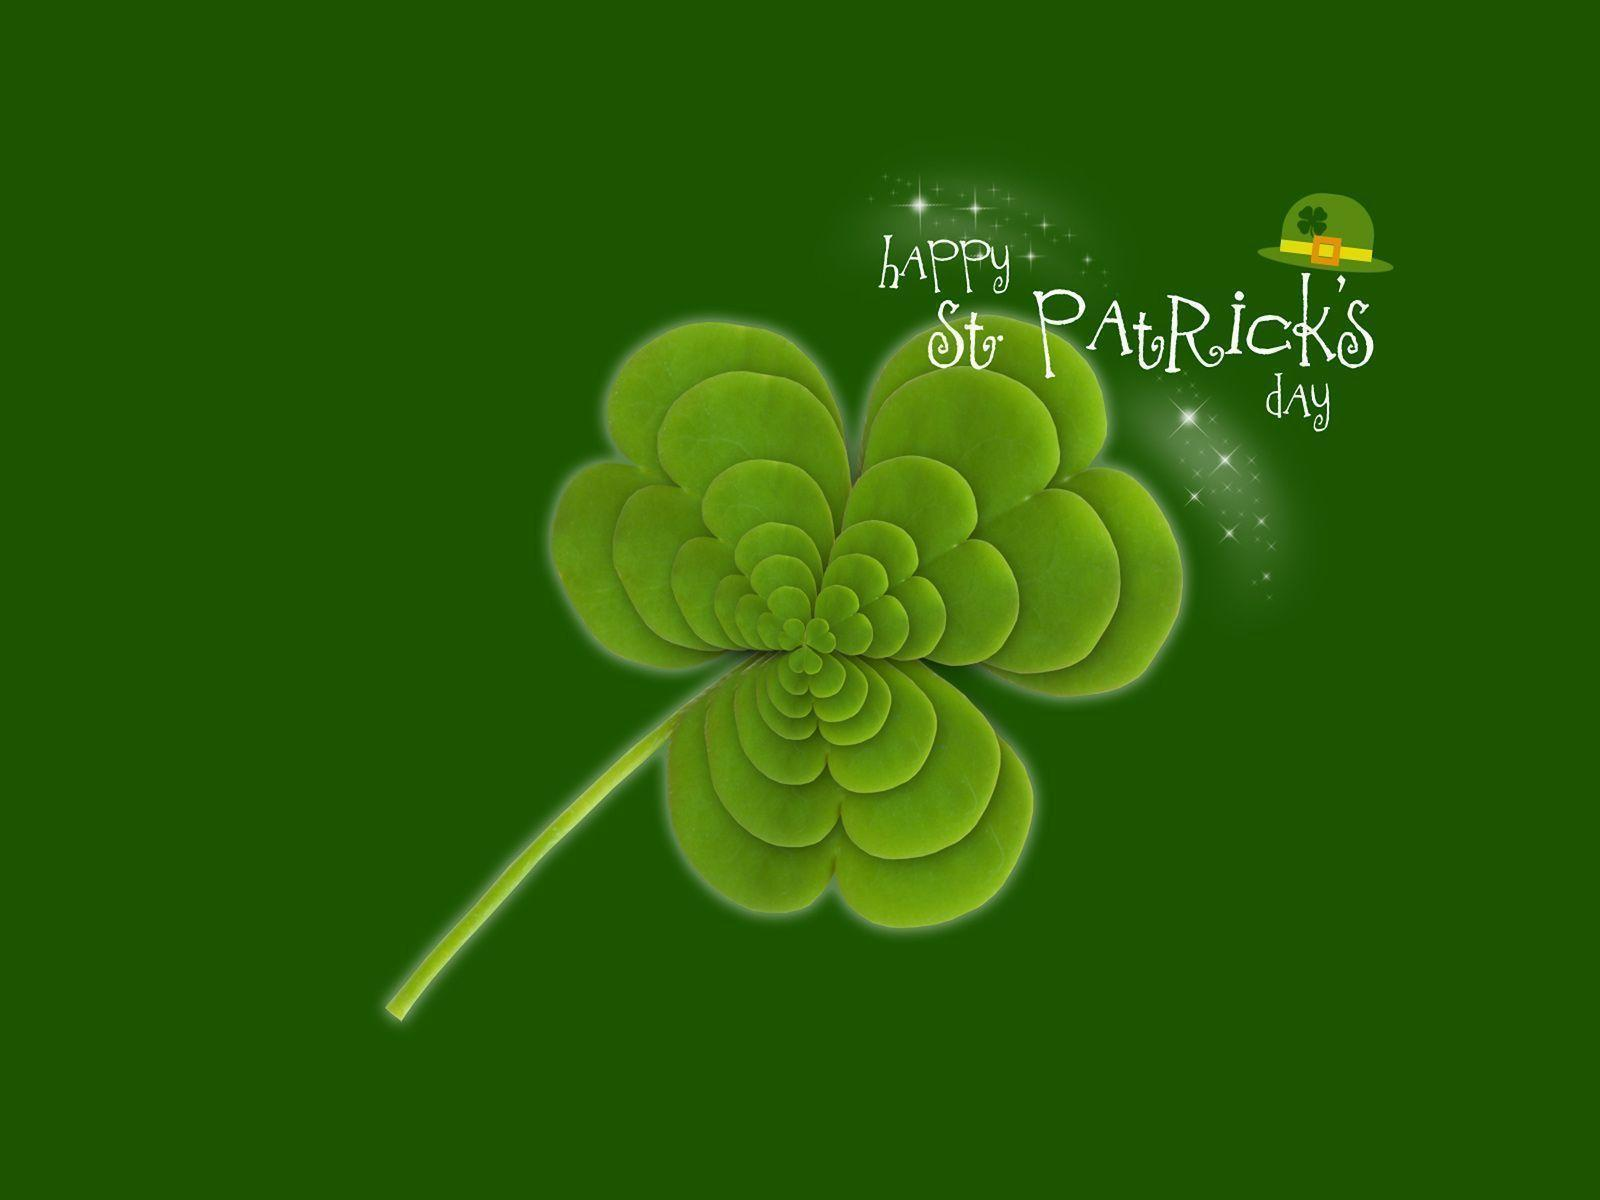 Saint Patricks day - Desktop wallpapers, download free wallpapers ...